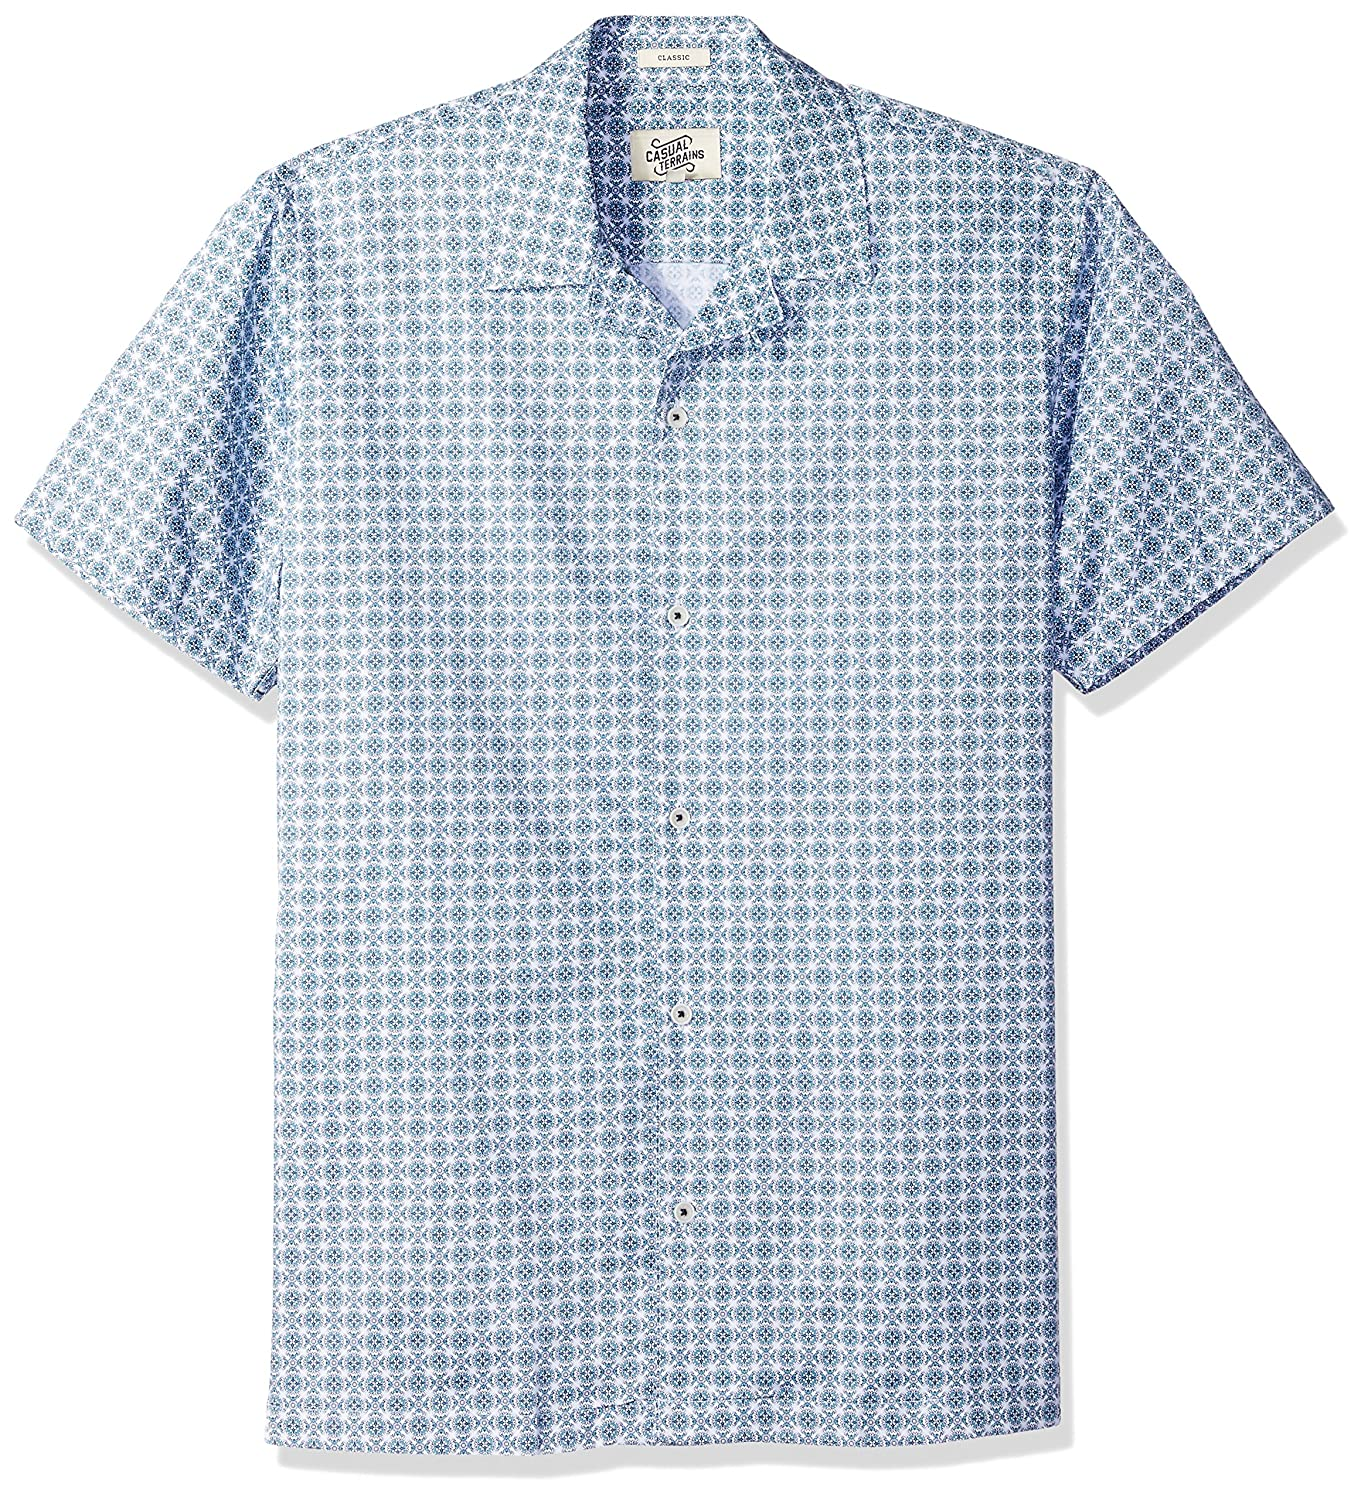 1950s Men's Shirt Styles – Dress Shirts to Casual Pullovers Casual Terrains Mens Classic-Fit Short-Sleeve Printed Camp Collar Shirt $27.95 AT vintagedancer.com